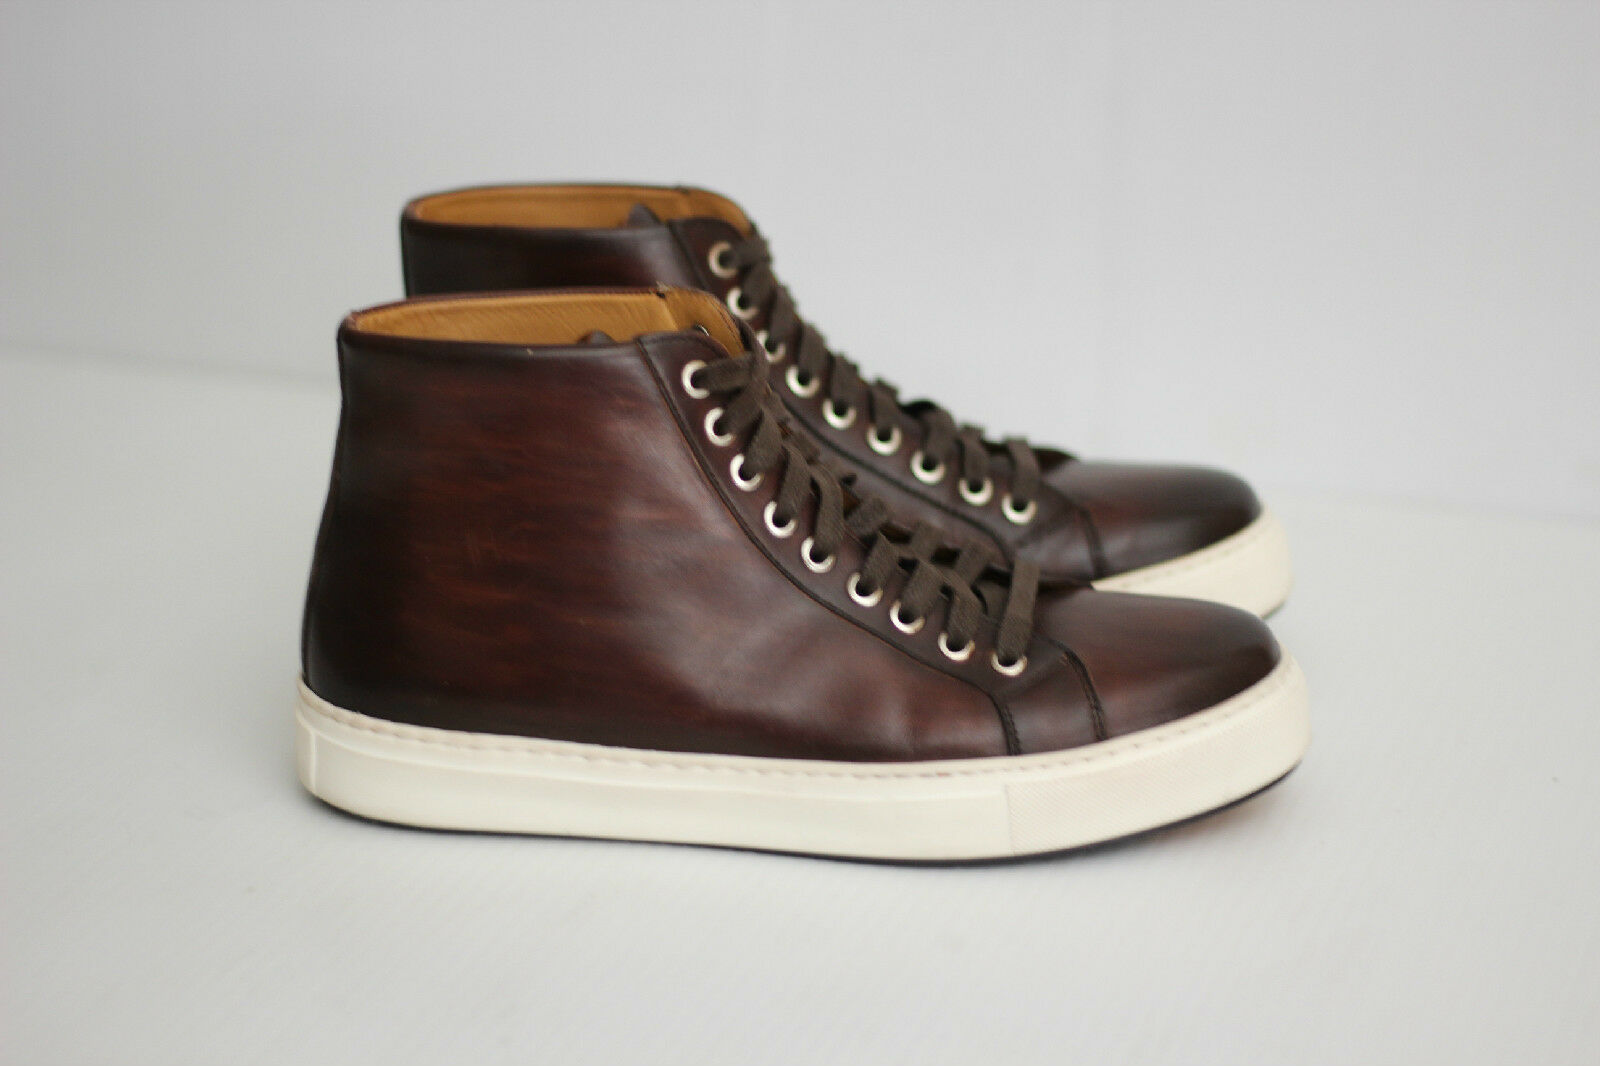 Magnanni 'Brando' High Top  Pelle Lace Up - Mid Brown - Size 7M  (U7)